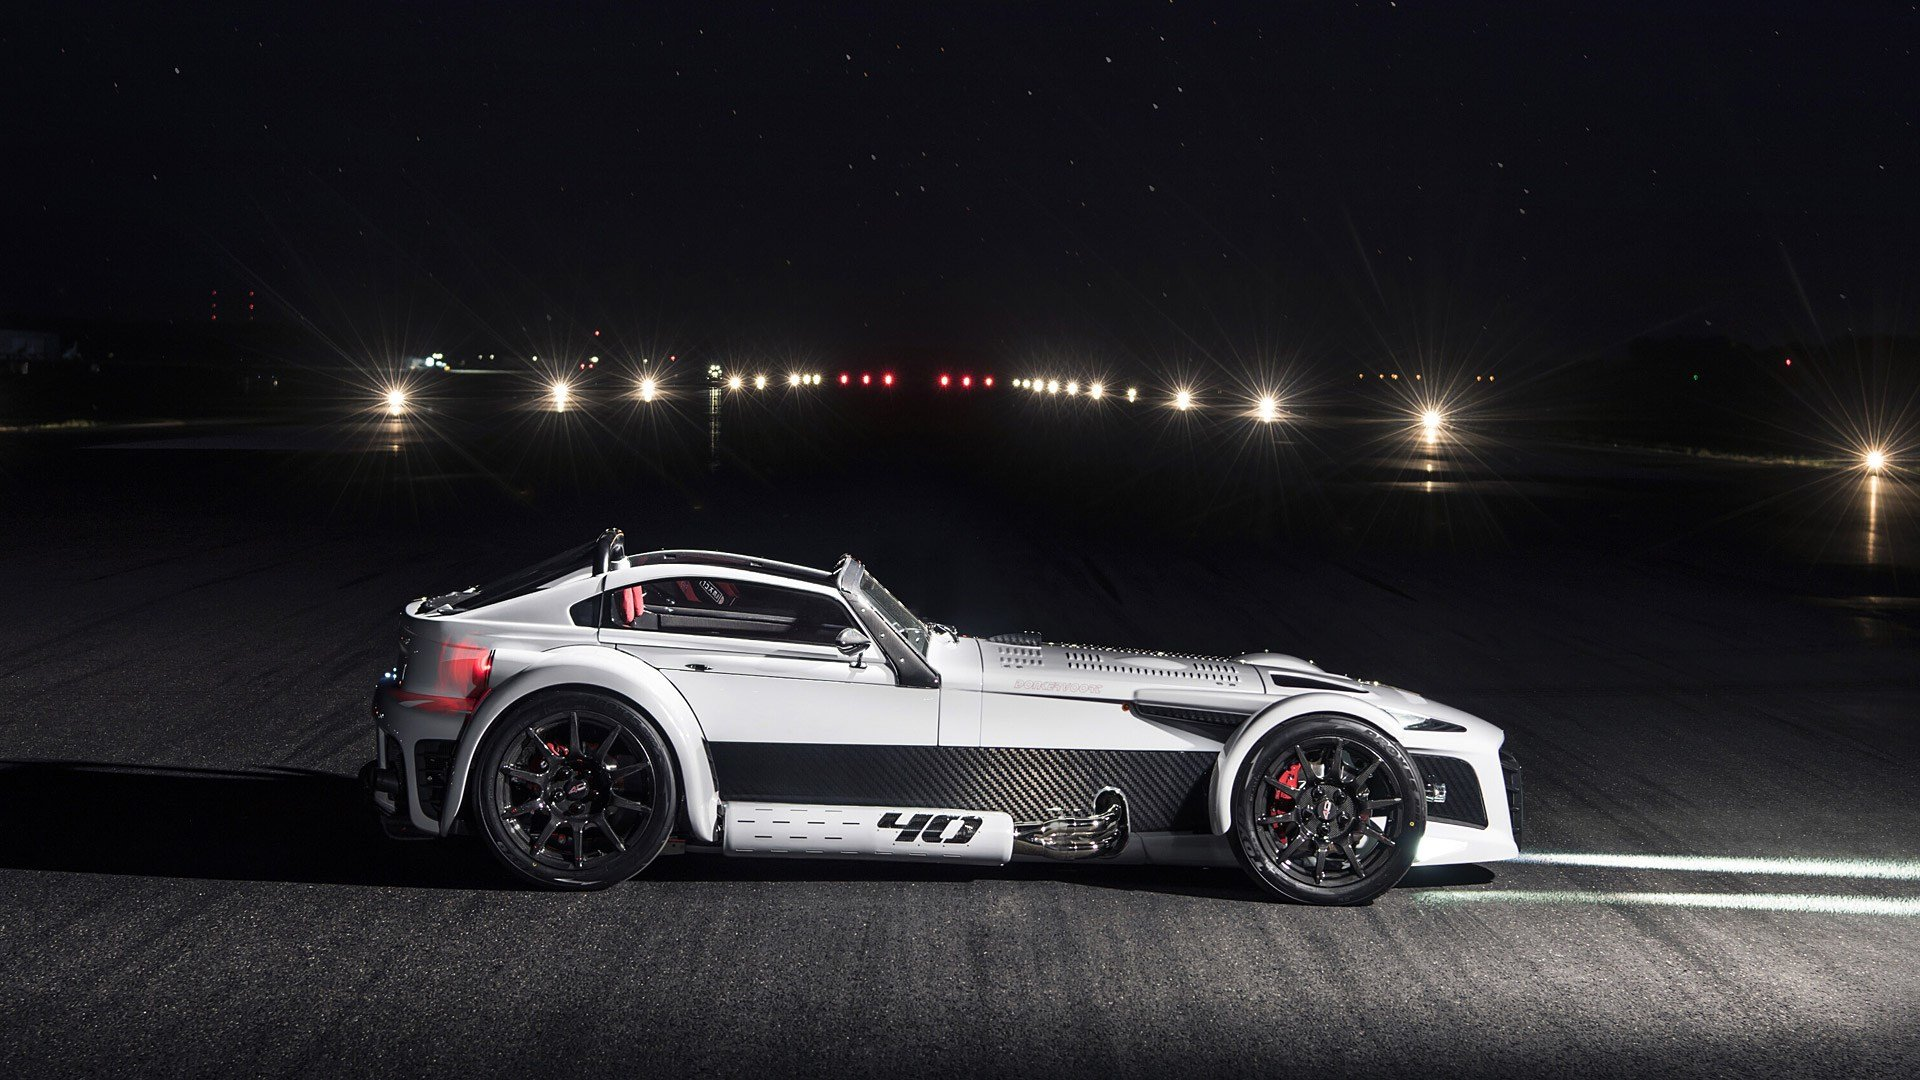 New 2018 Donkervoort D8 Gto 40 Wallpapers Hd Images Wsupercars On This Month